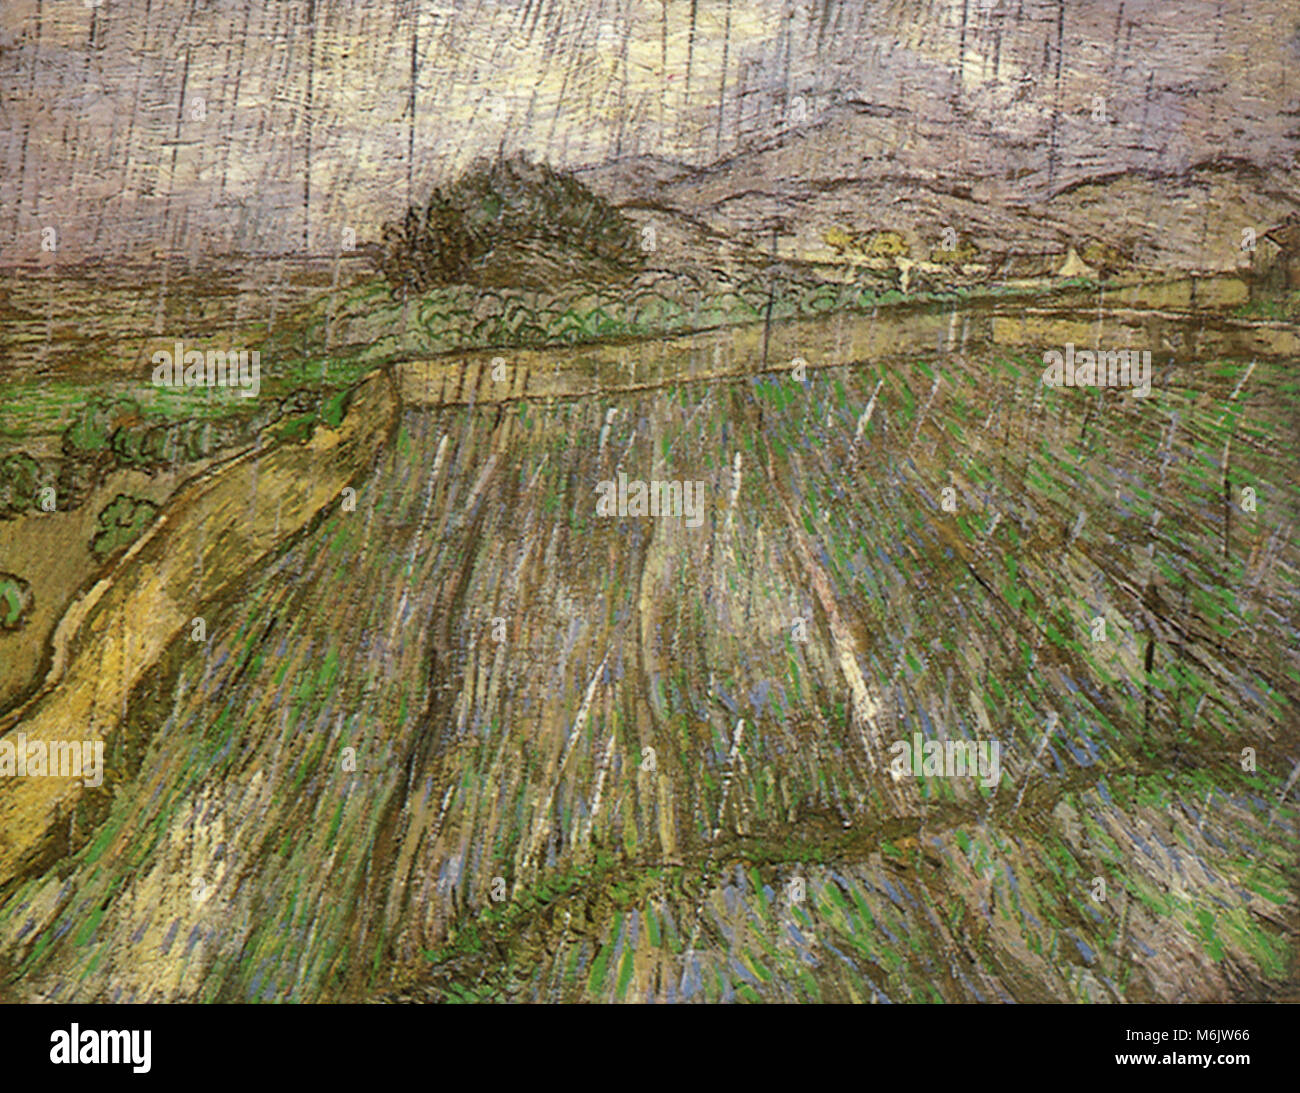 Wheat Field in Rain, Van Gogh, Vincent Willem, 1889. - Stock Image